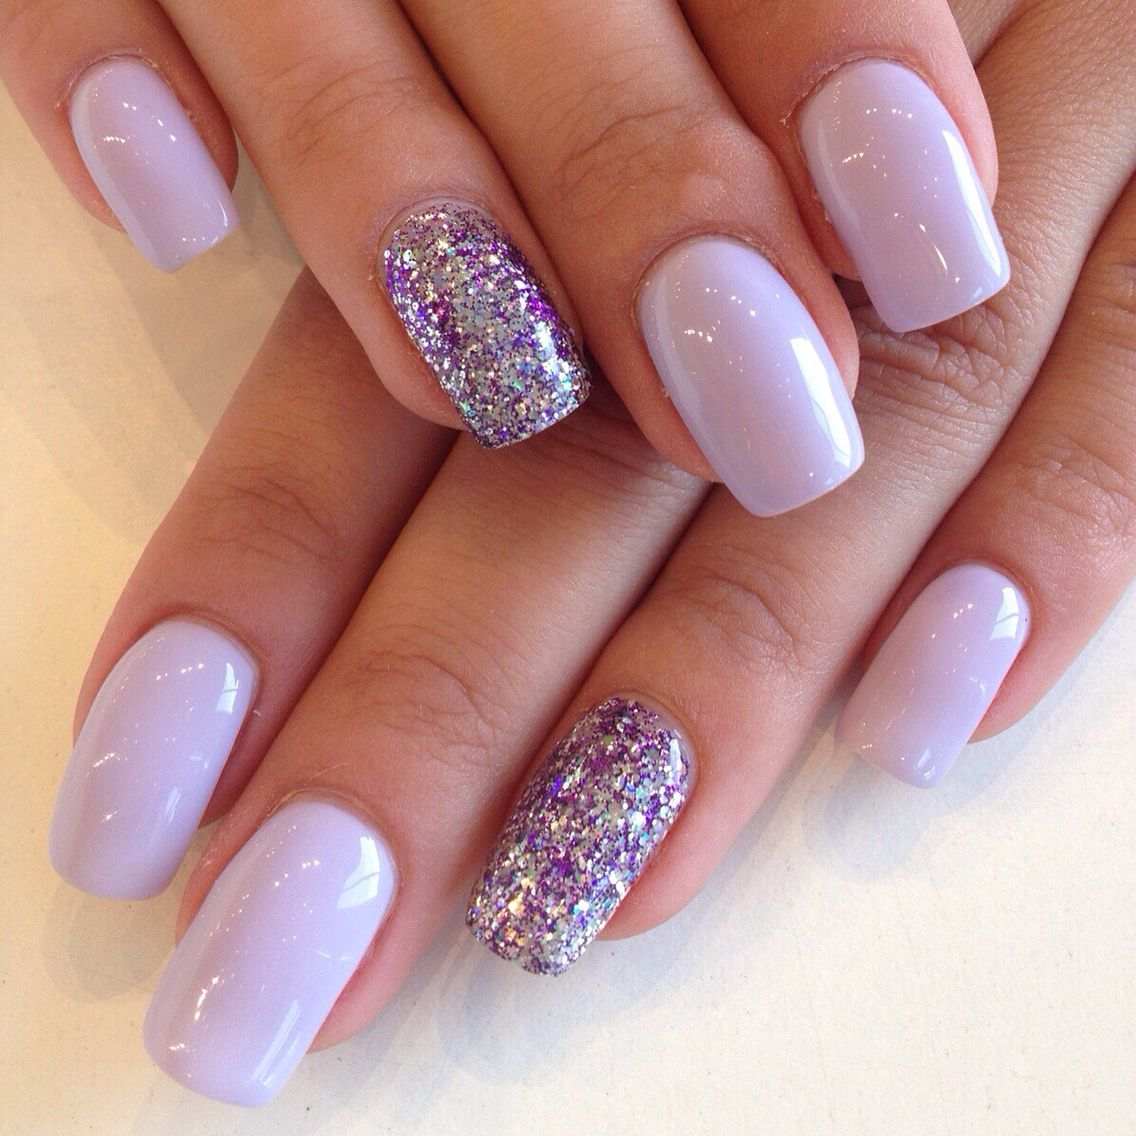 #ManicureMonday #SummerTrend Lavender Nails!!! #Lavender #Purple #Glitter  #Bombshell #Beauty #BombshellBeautyOC - ManicureMonday #SummerTrend Lavender Nails!!! #Lavender #Purple